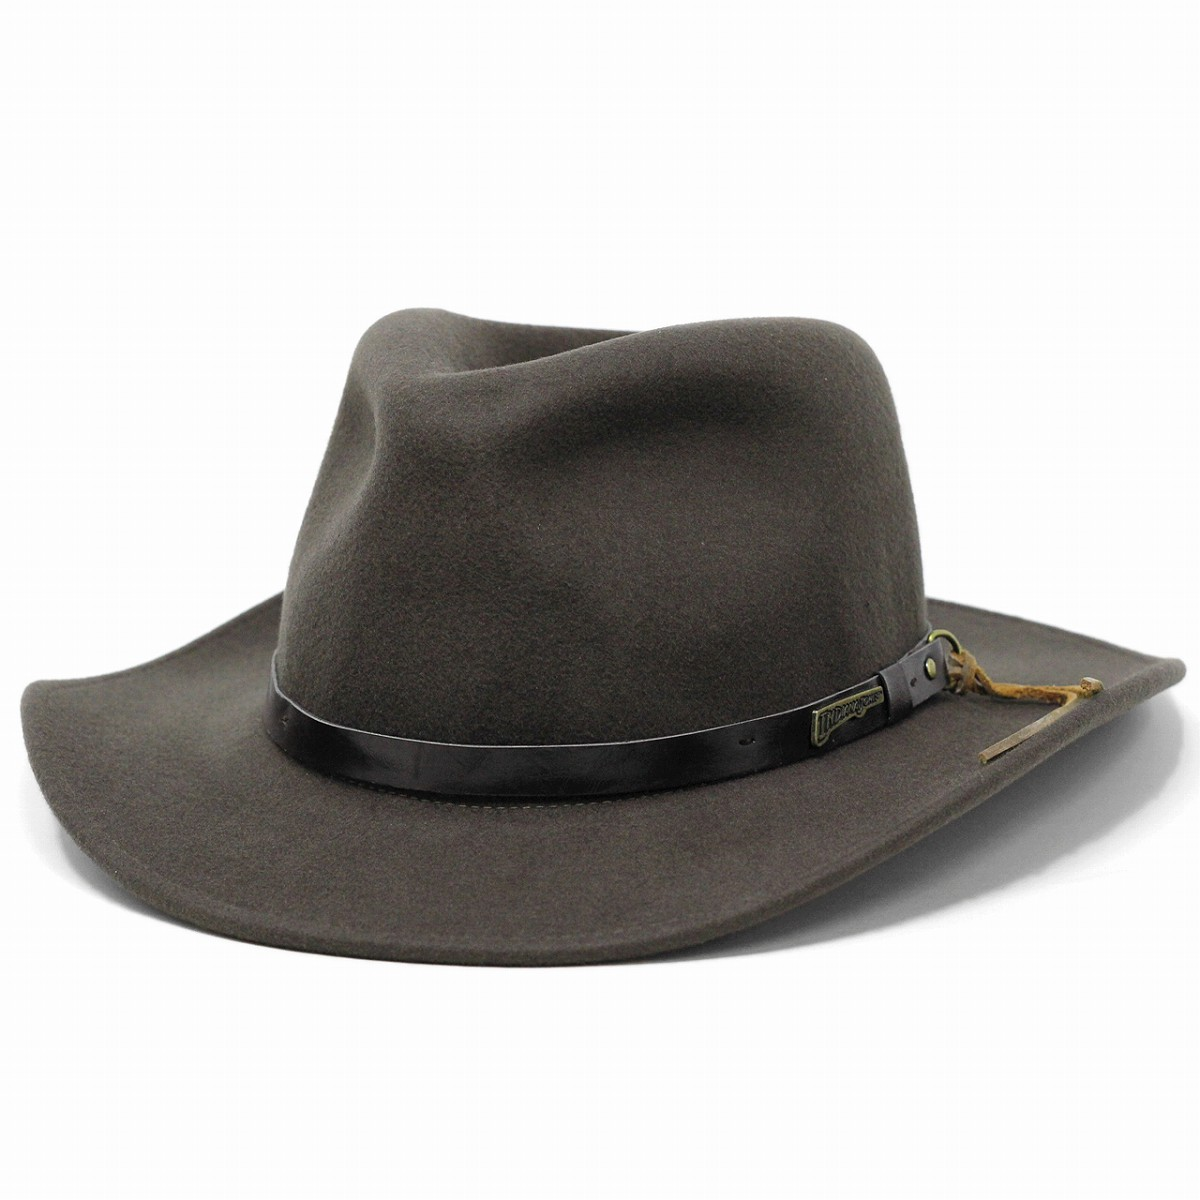 dc8aa1240 Cowboy hats felt hats Indiana Jones Hat men's wide brim leather-like belt  wool winter Western adventure / Brown tea